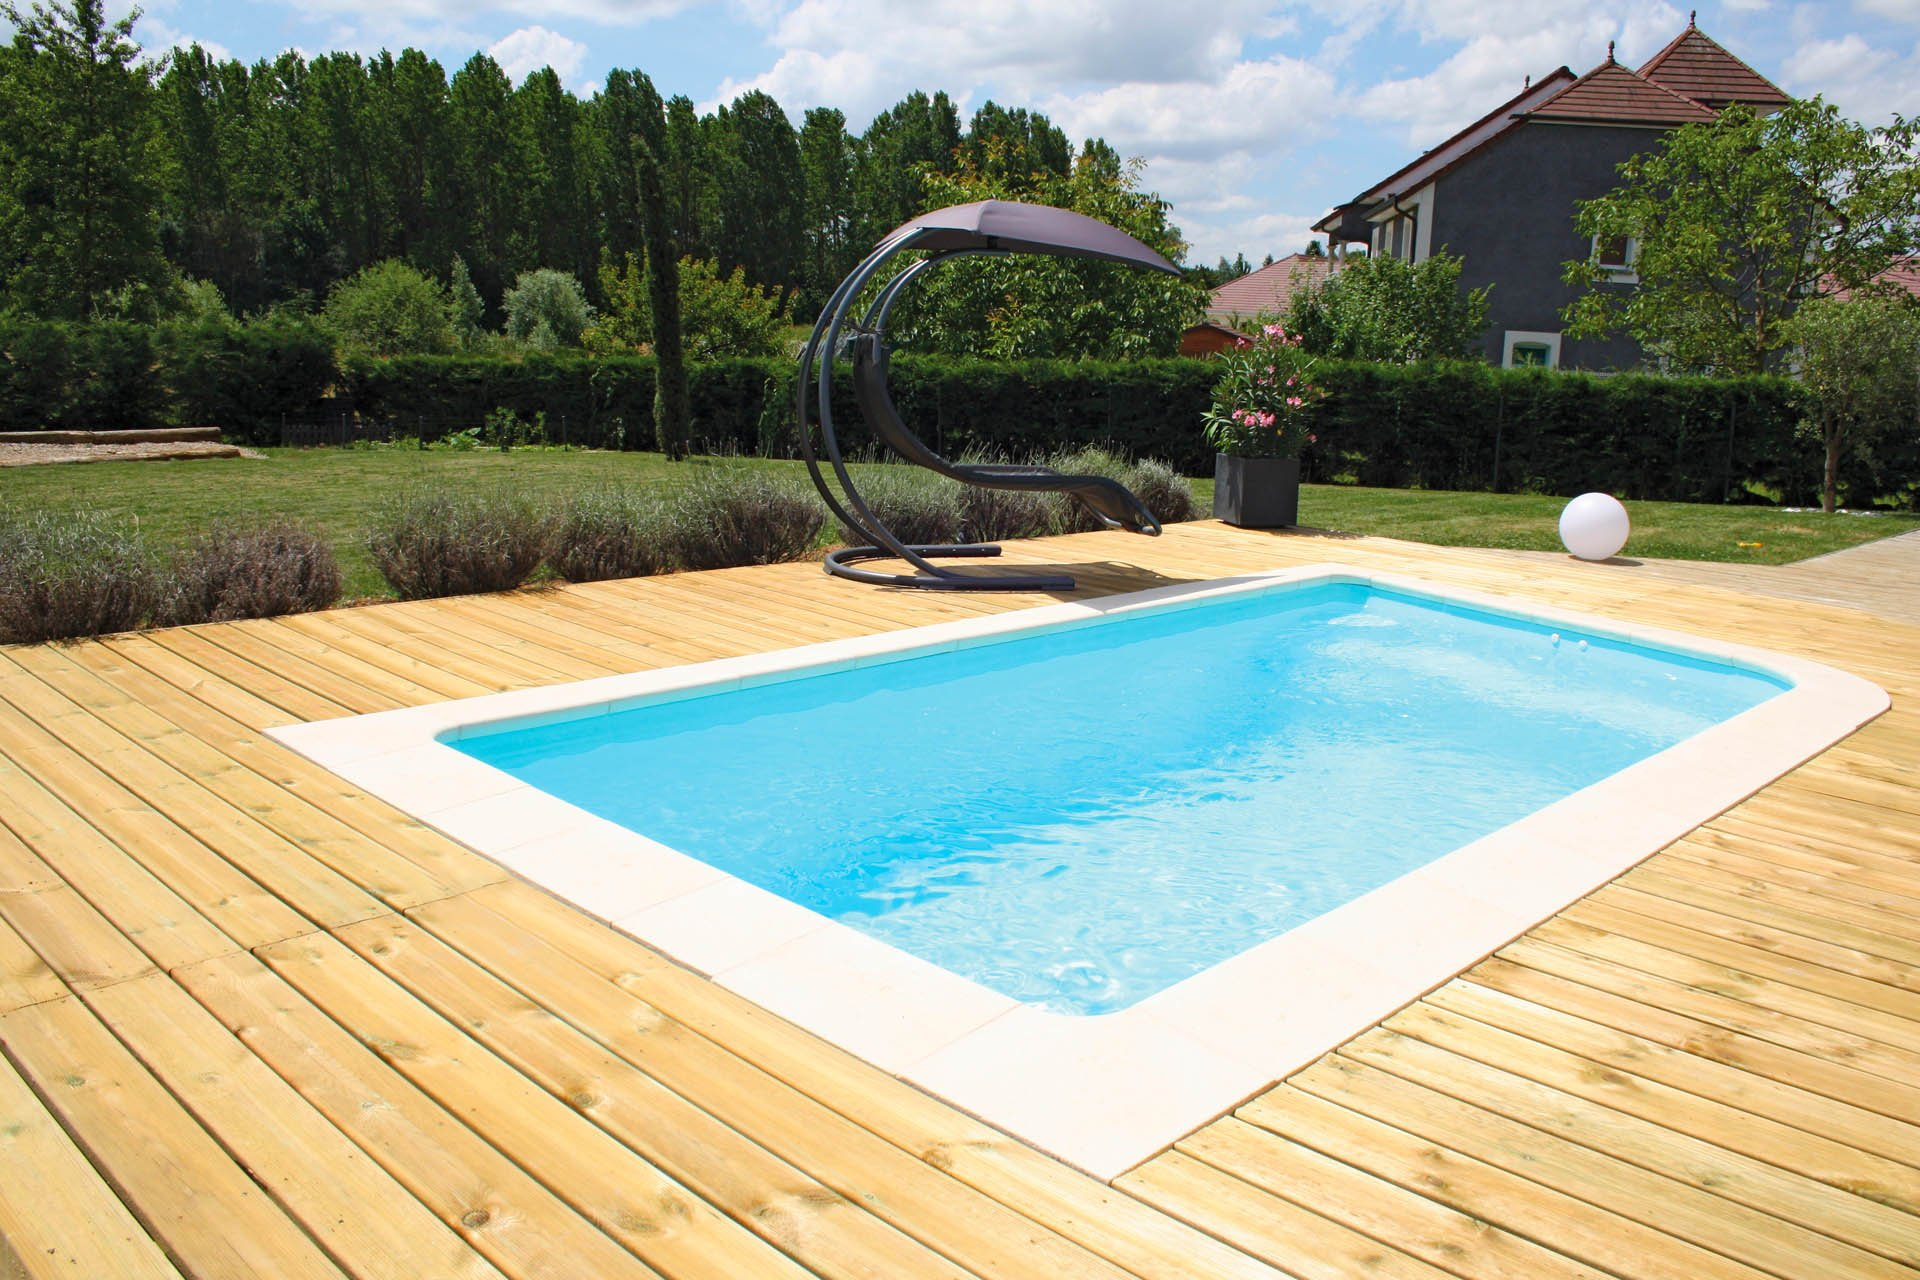 piscine coque polyester forme rectangulaire 5x2 50 a fond plat bahamas piscines ibiza